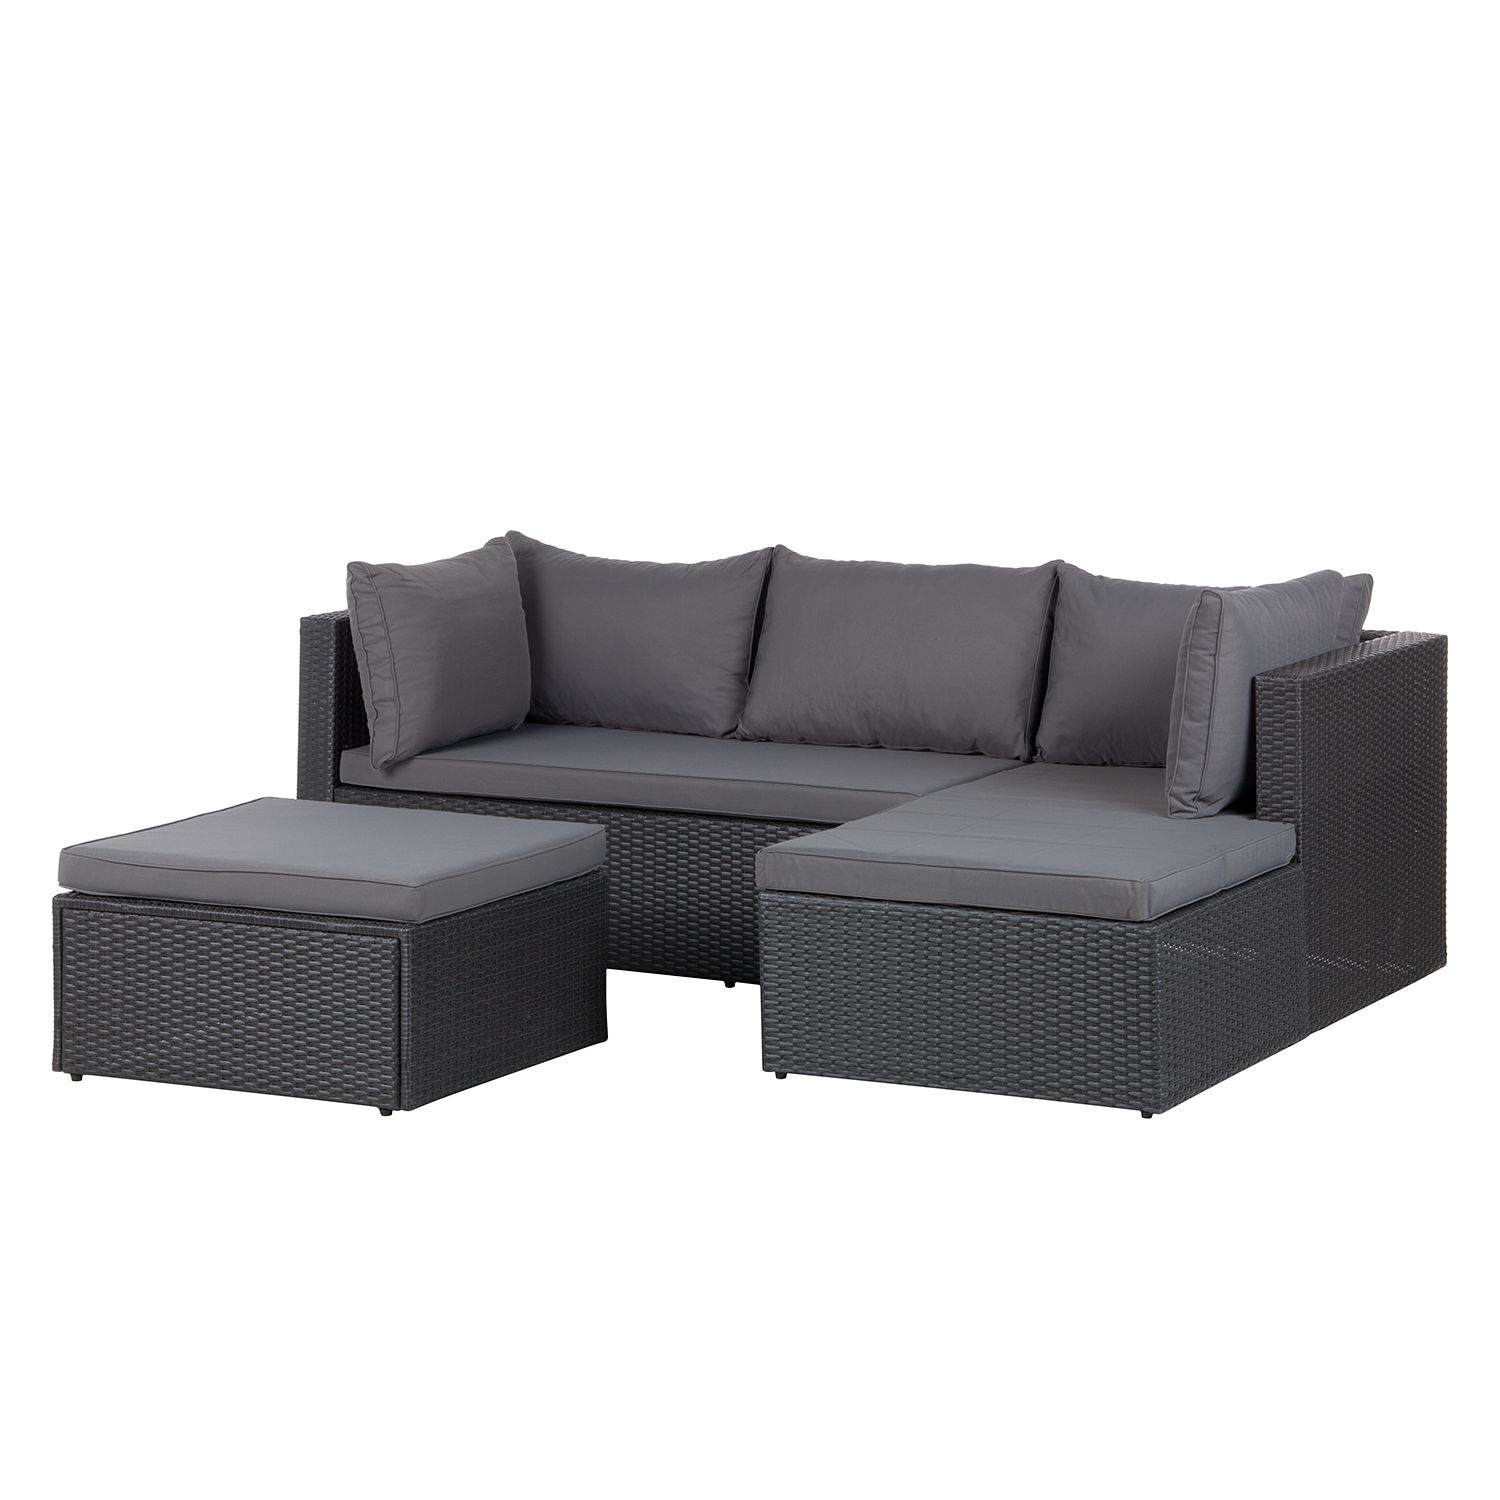 loungeset paradise lounge i 3 teilig polyrattan grau kings garden online kaufen. Black Bedroom Furniture Sets. Home Design Ideas